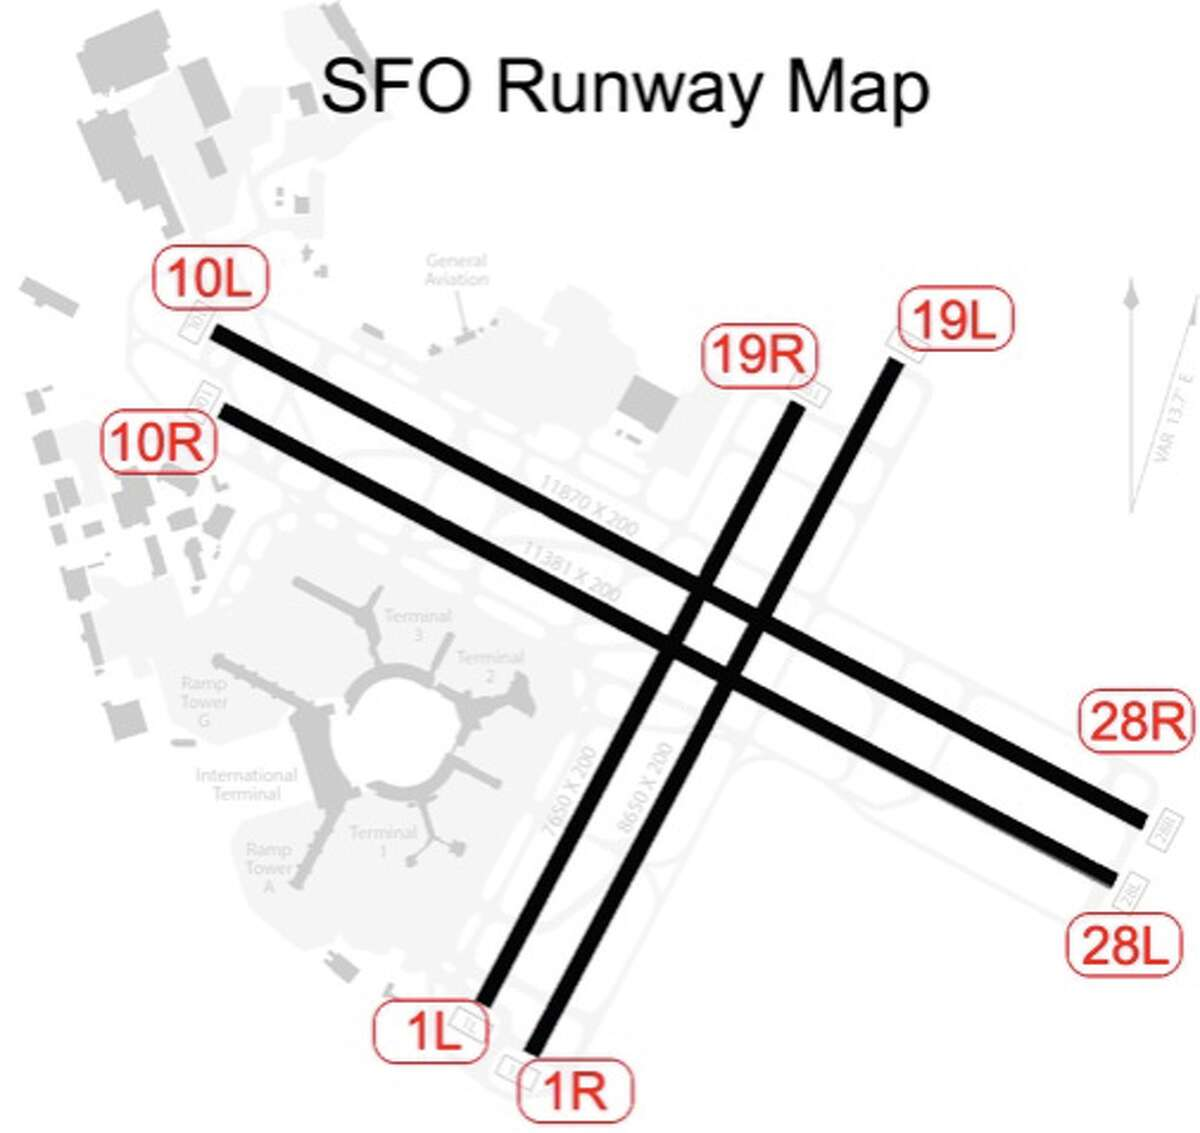 One of SFO's busiest runways, 28L (lower right) will be closed for 20 days of repairs in September.